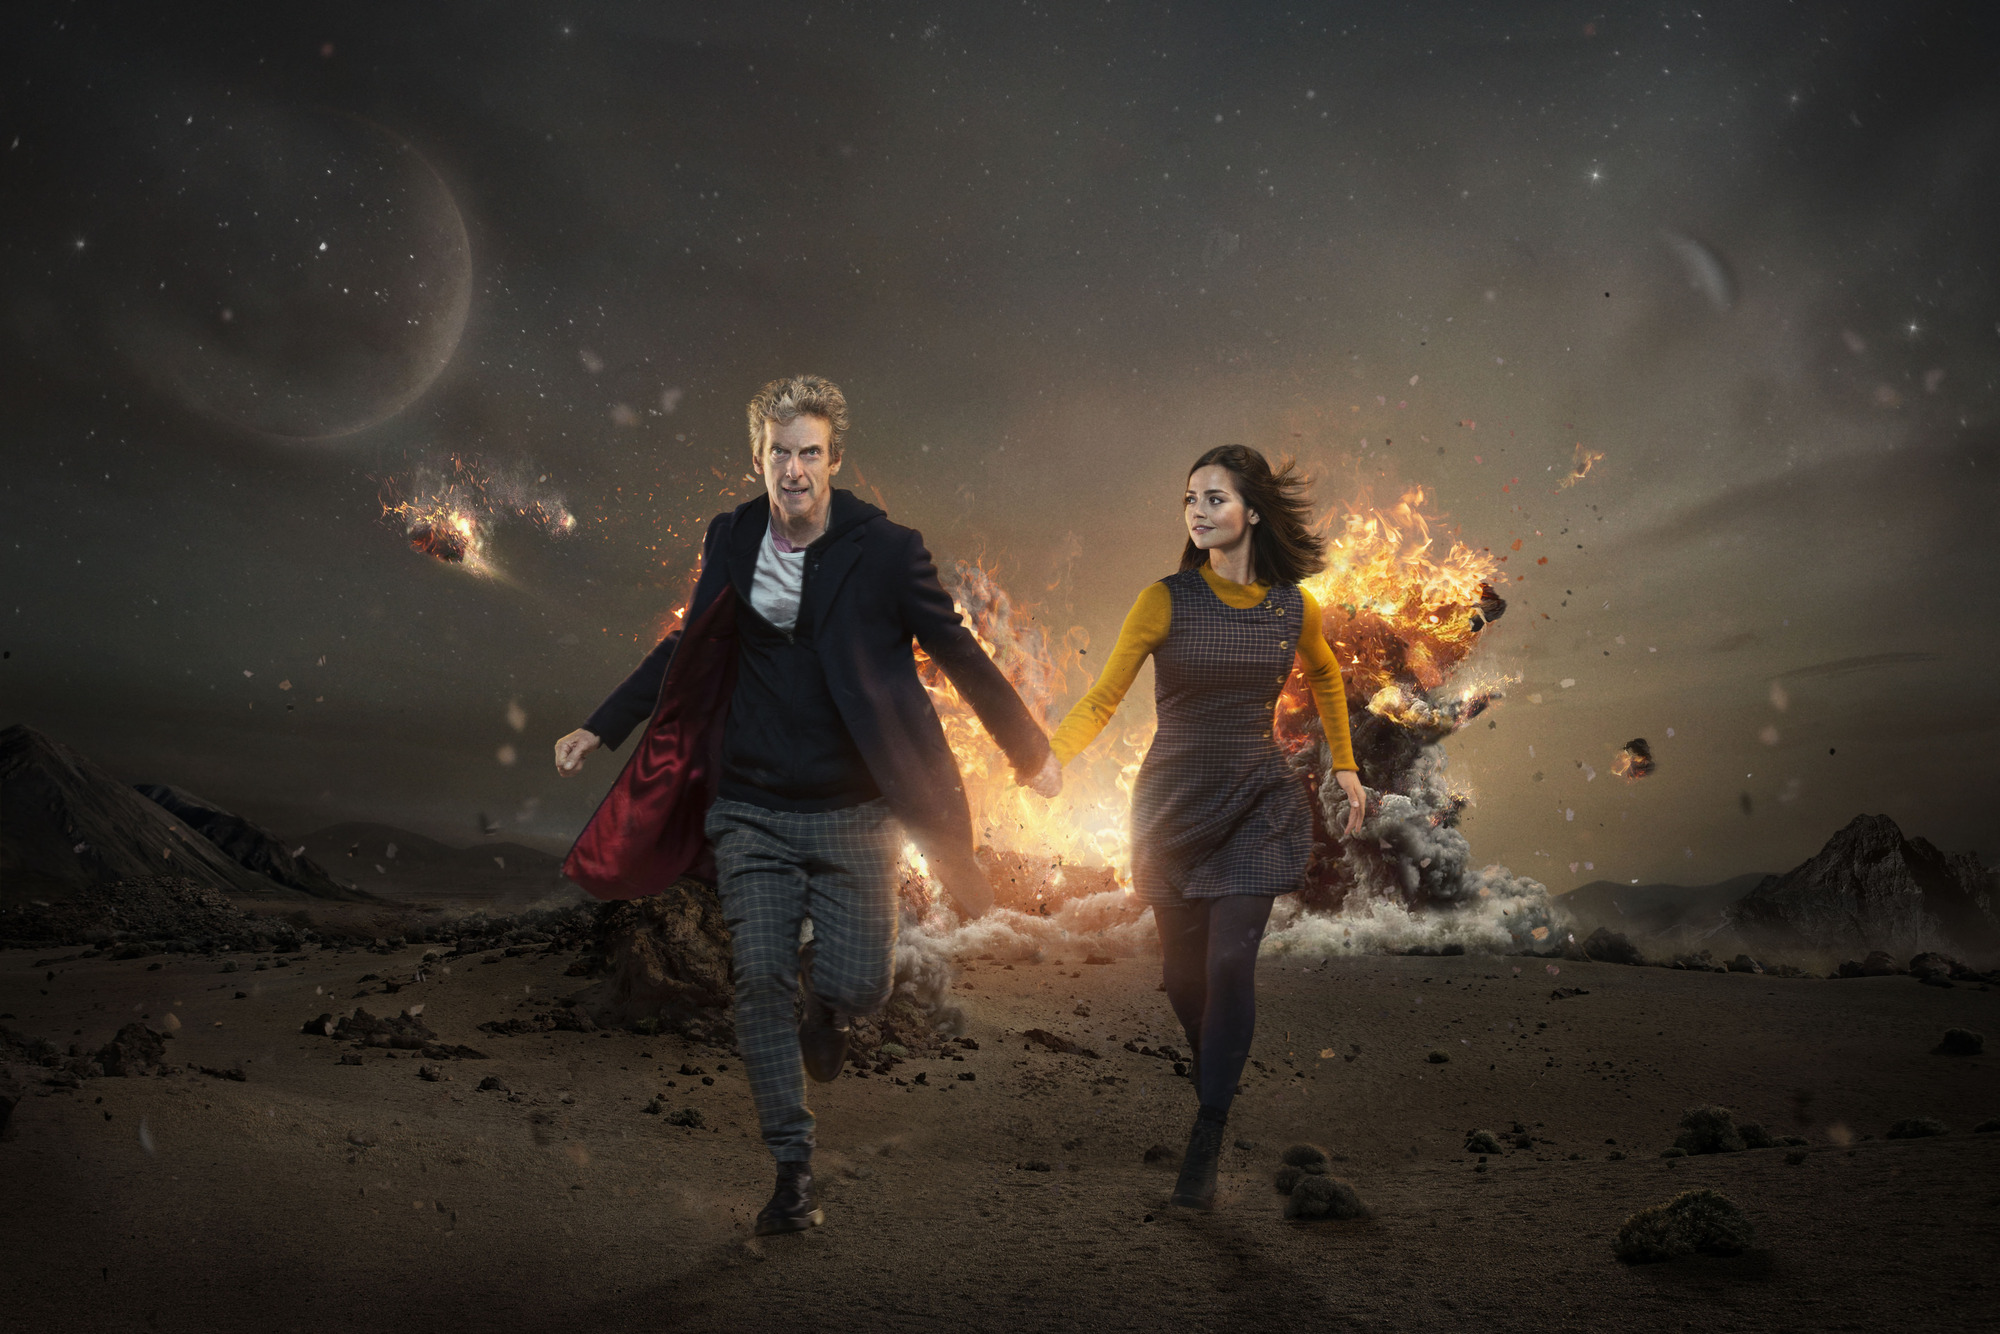 Doctor Who spoilers: Everything you need to know about series 9